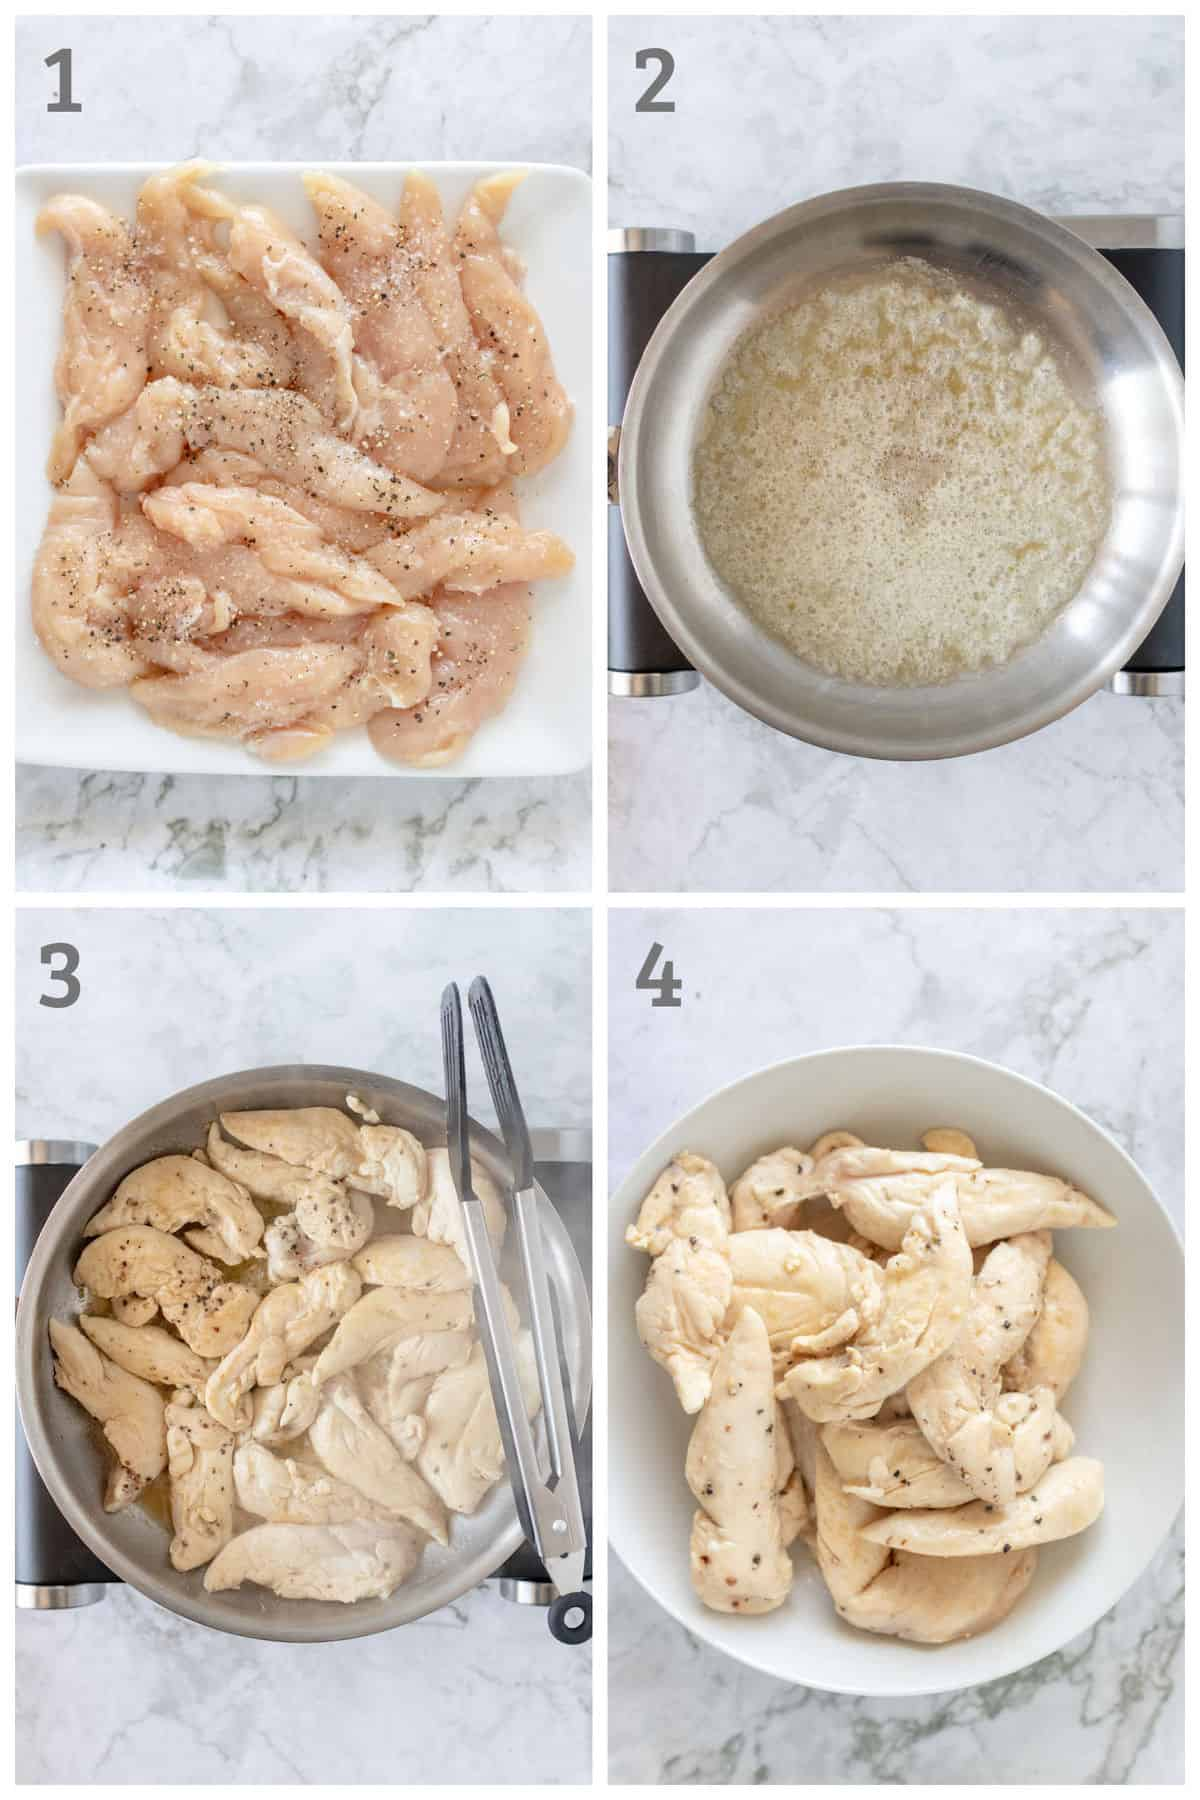 Step by step instructions for making a one pot mustard chicken with mushrooms and artichokes